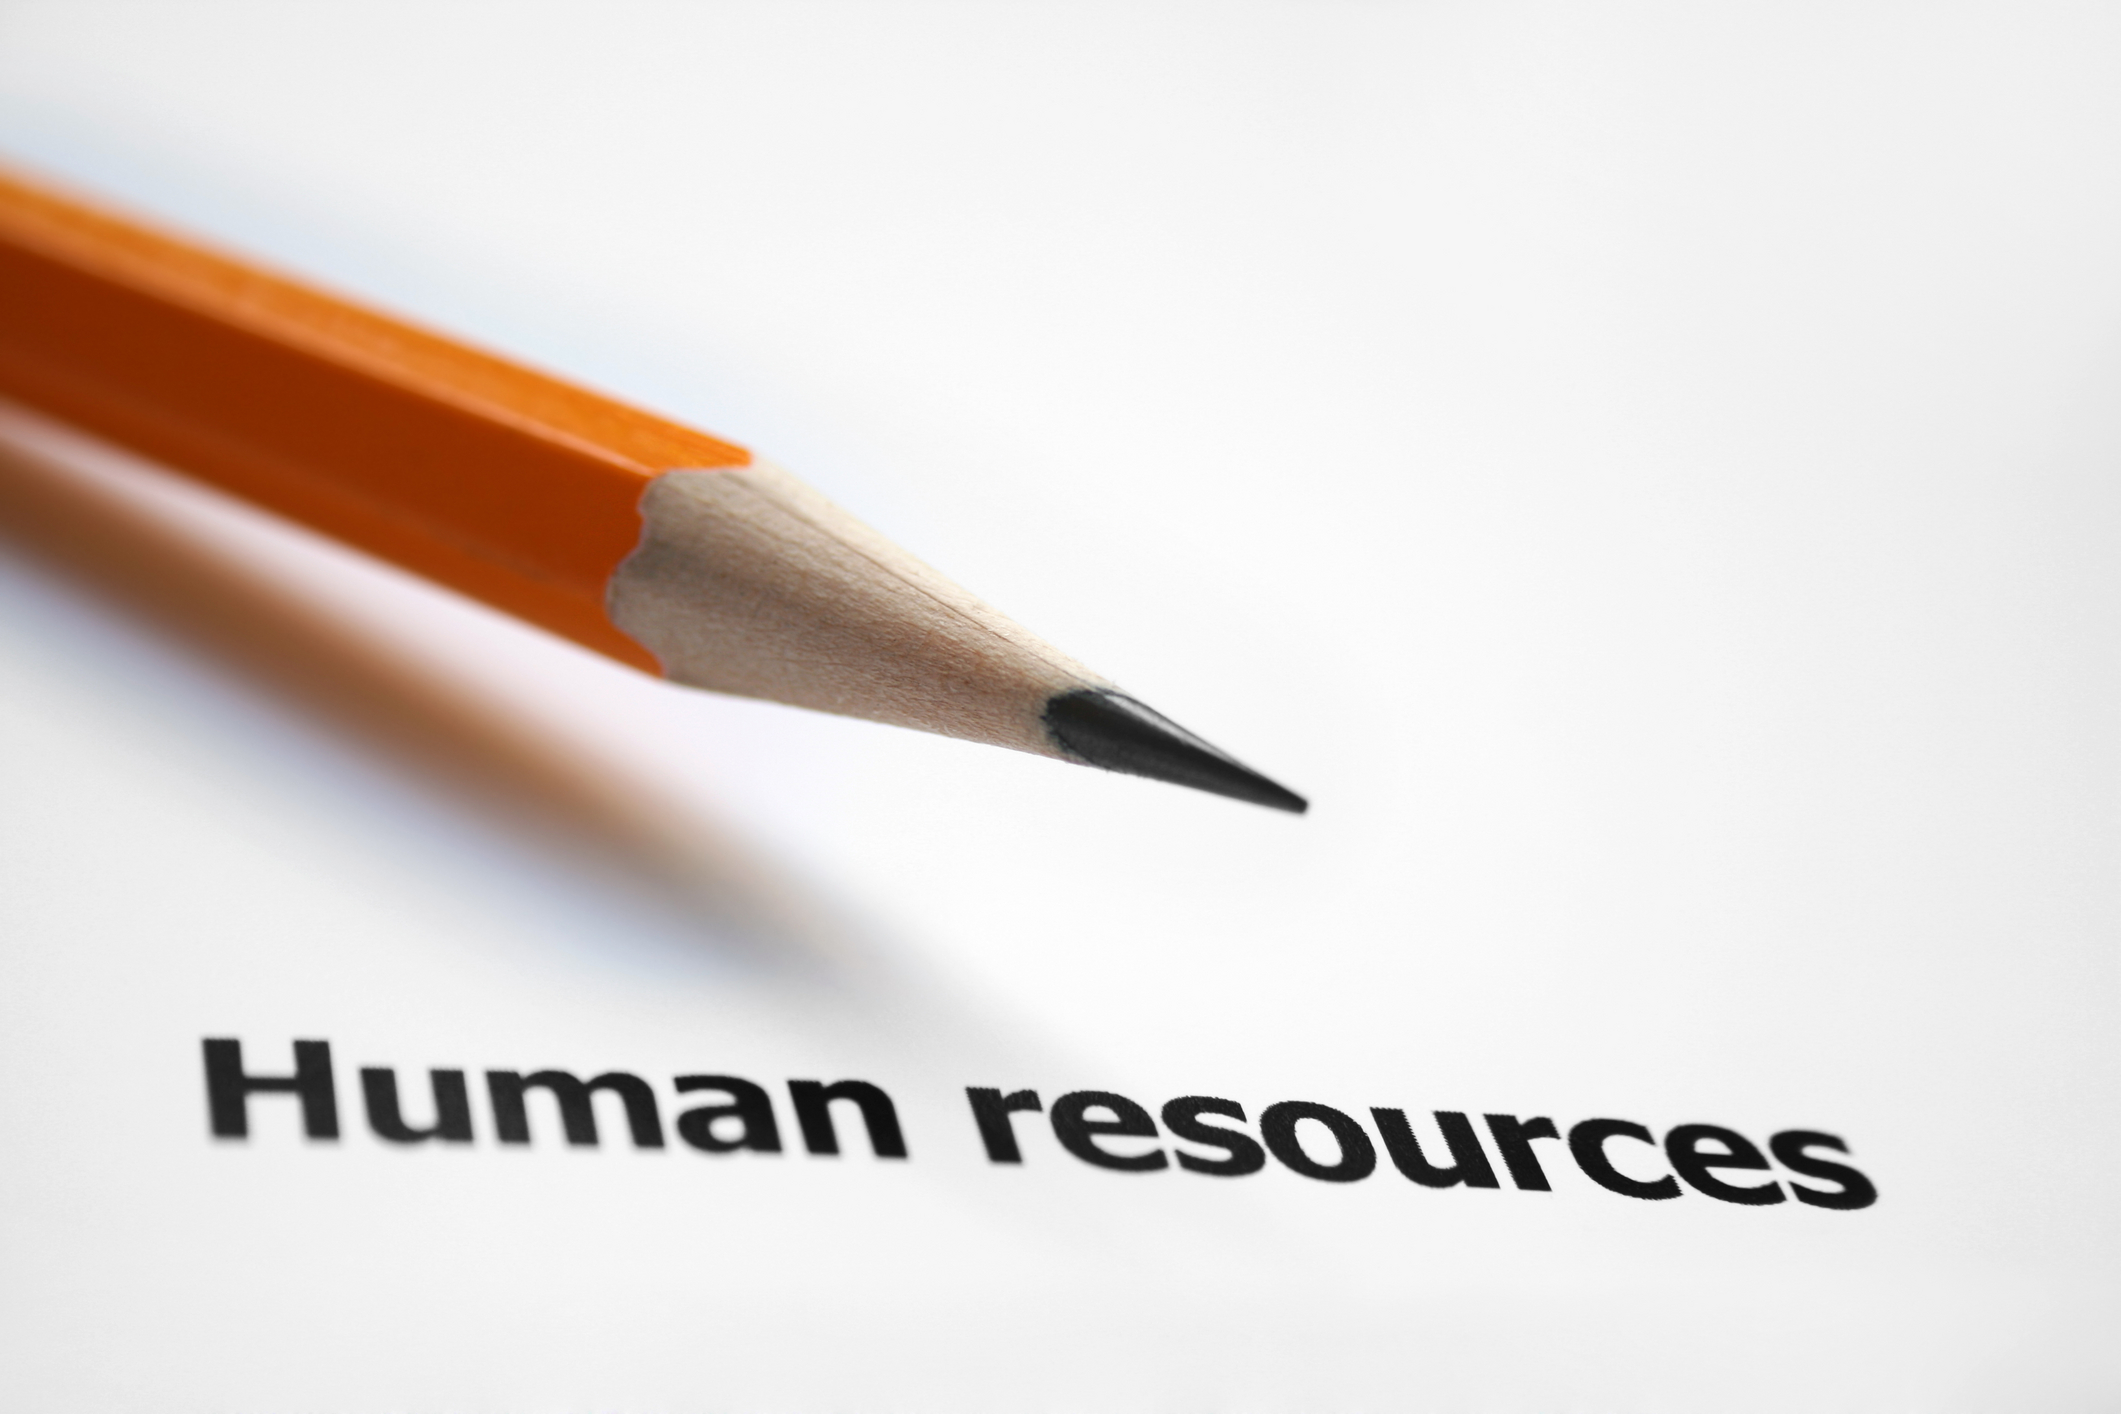 Human Resources  Two Simple Words Creating Great Confusion